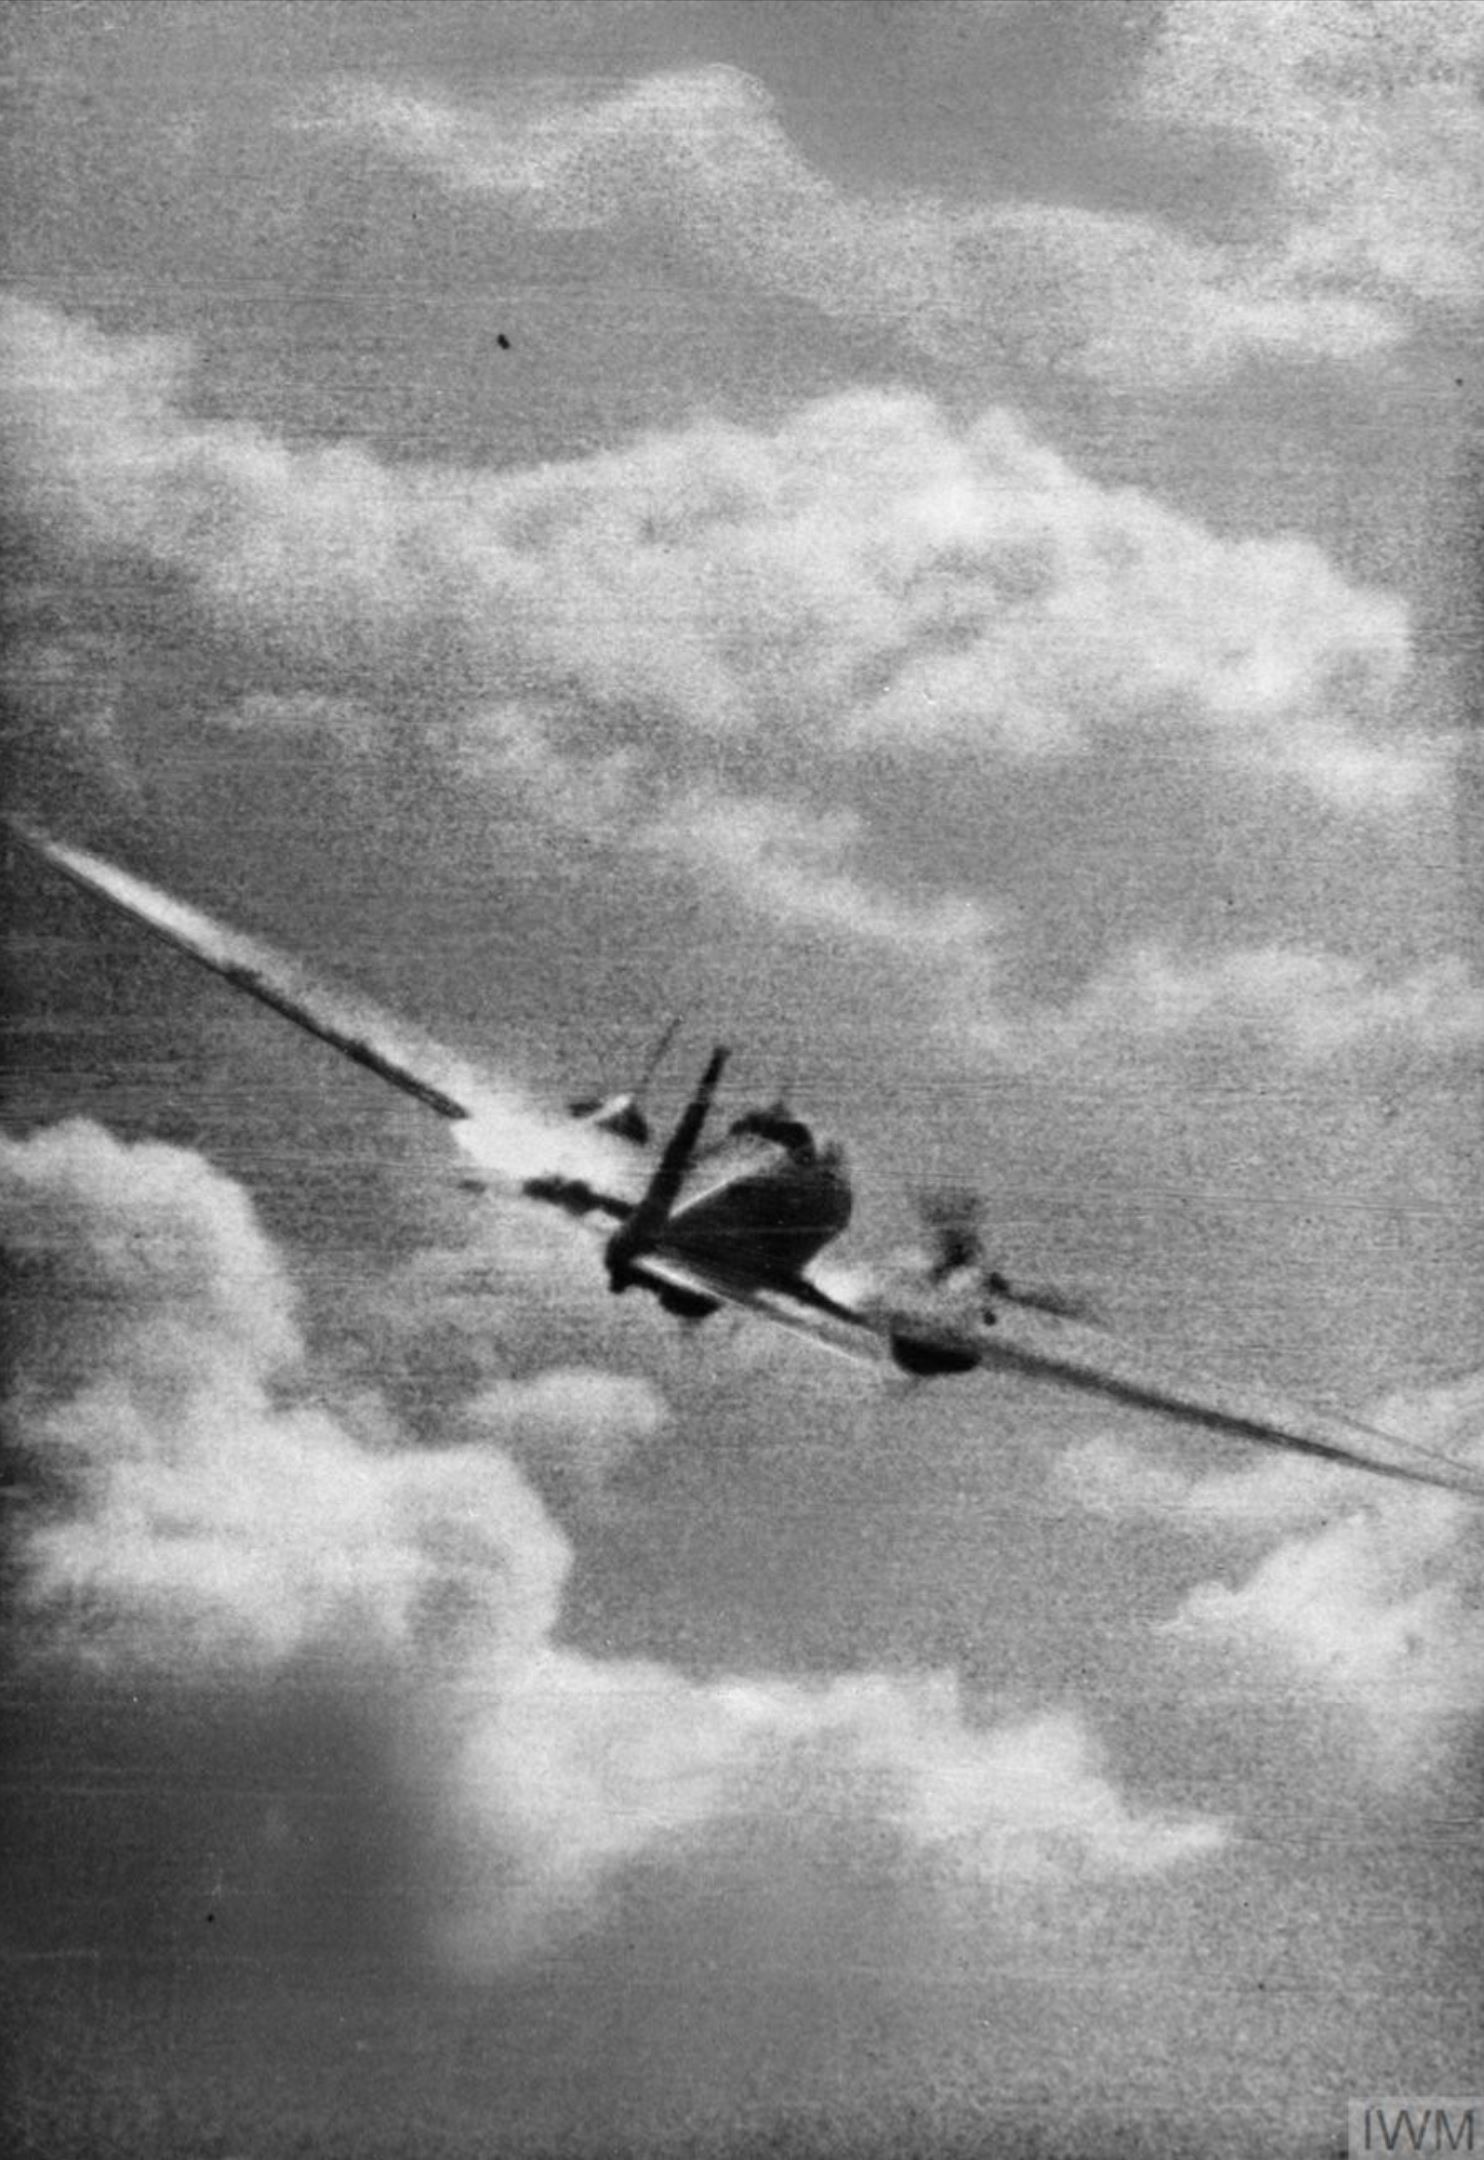 Gun camera footage from RAF 609Sqn PO Miller showing a He 111 being hit 1940 IWM CH1830